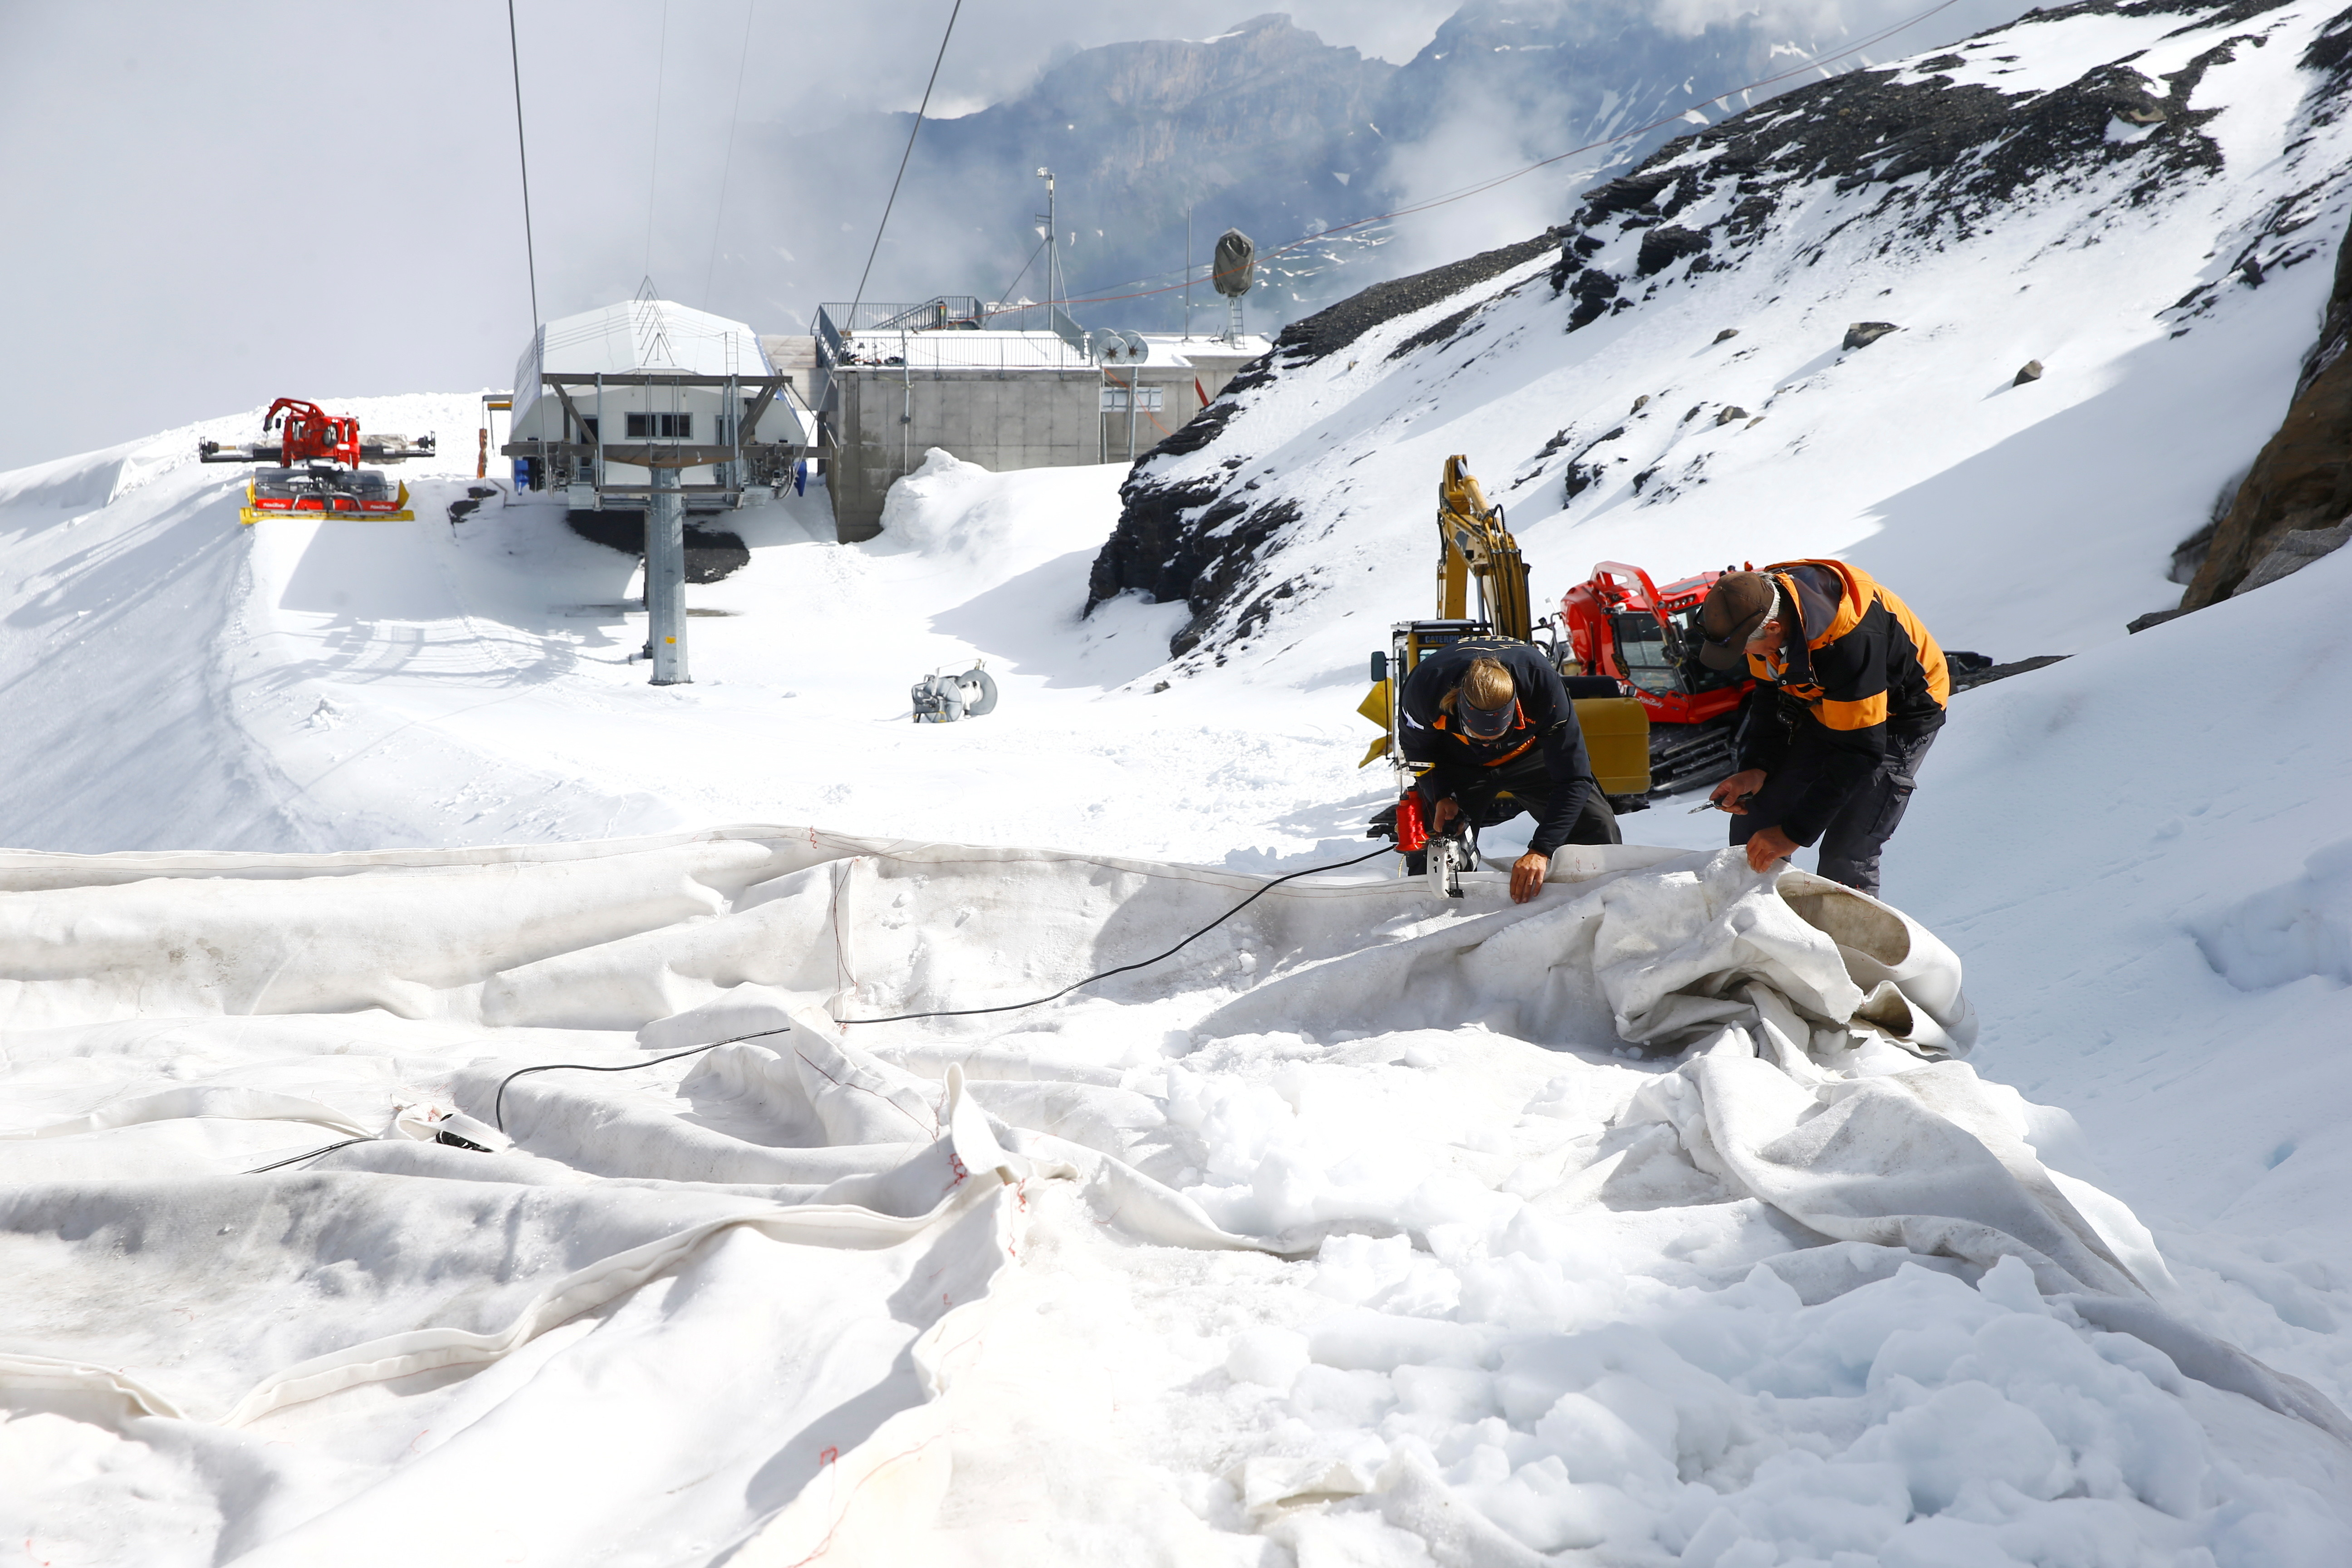 employees of Titlis Bergbahnen sew together blankets for the coverage of parts of the glacier to protect it against melting on Mount Titlis near the Alpine resort of Engelberg, Switzerland